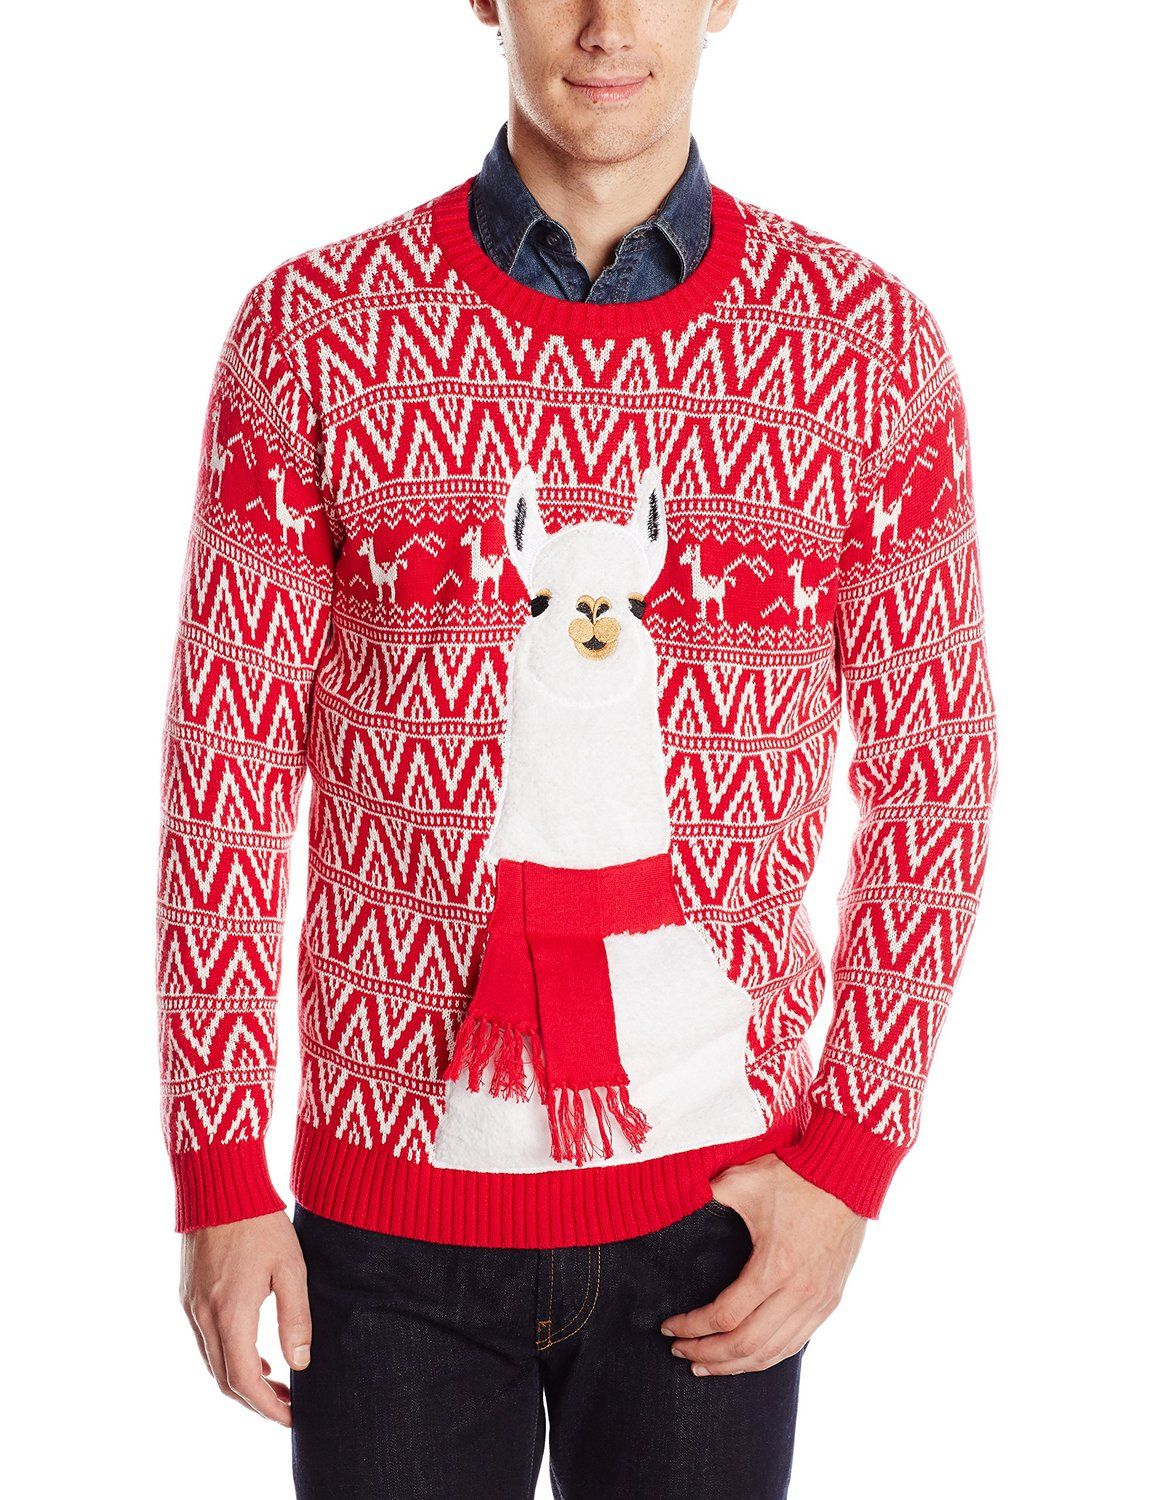 Blizzard Bay Men's Festive Llama Ugly Christmas Sweater at Amazon Men's Clothing store: